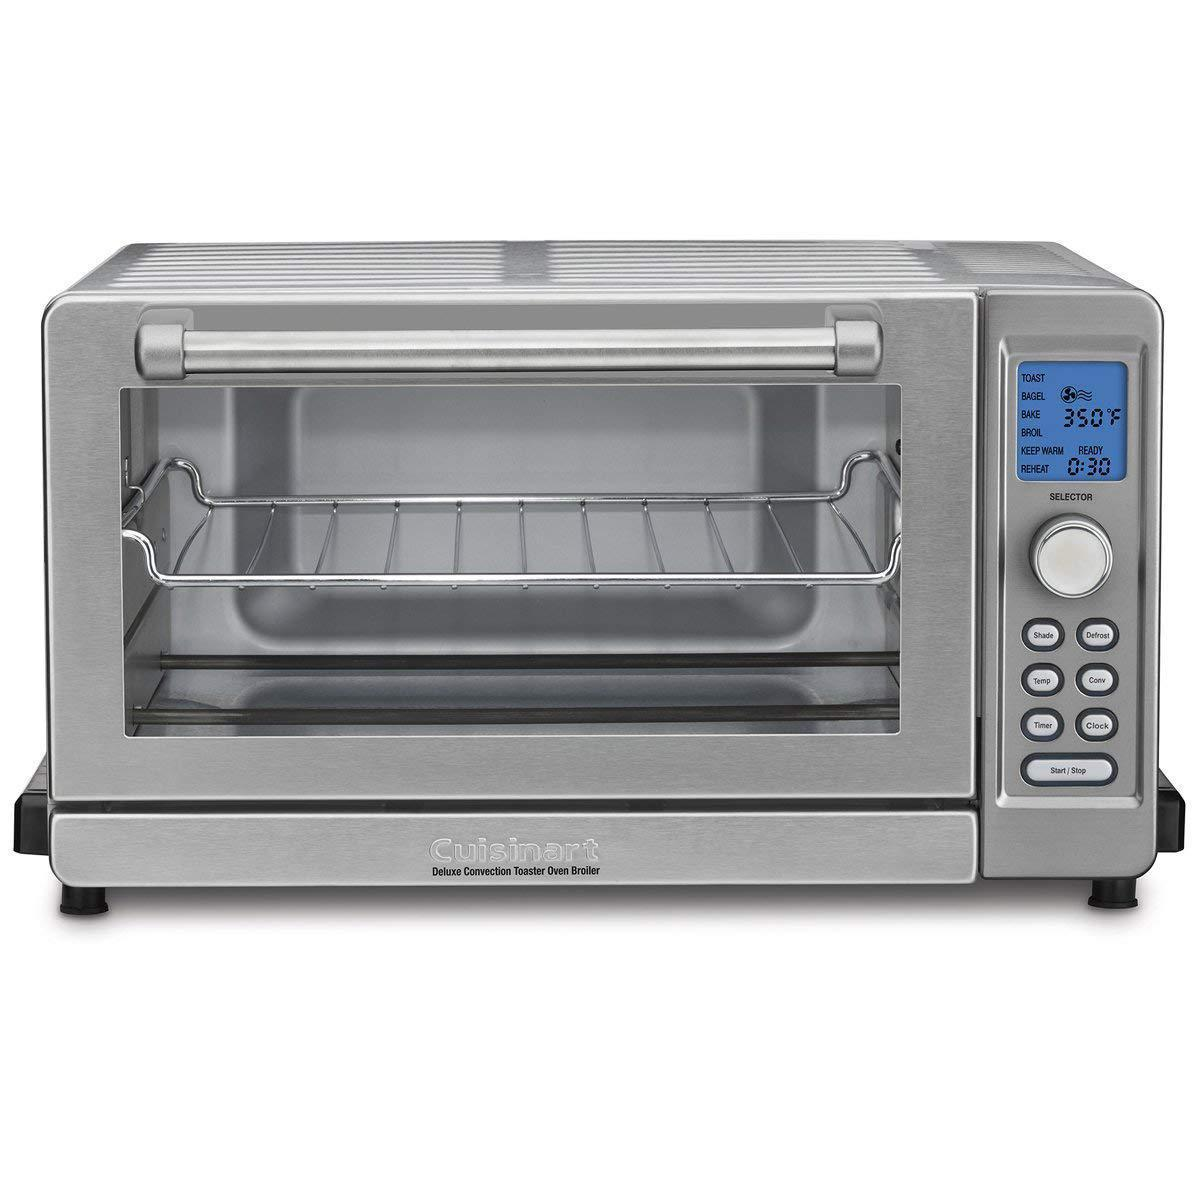 Cuisinart TOB-135 Deluxe Convection Toaster Oven Broiler